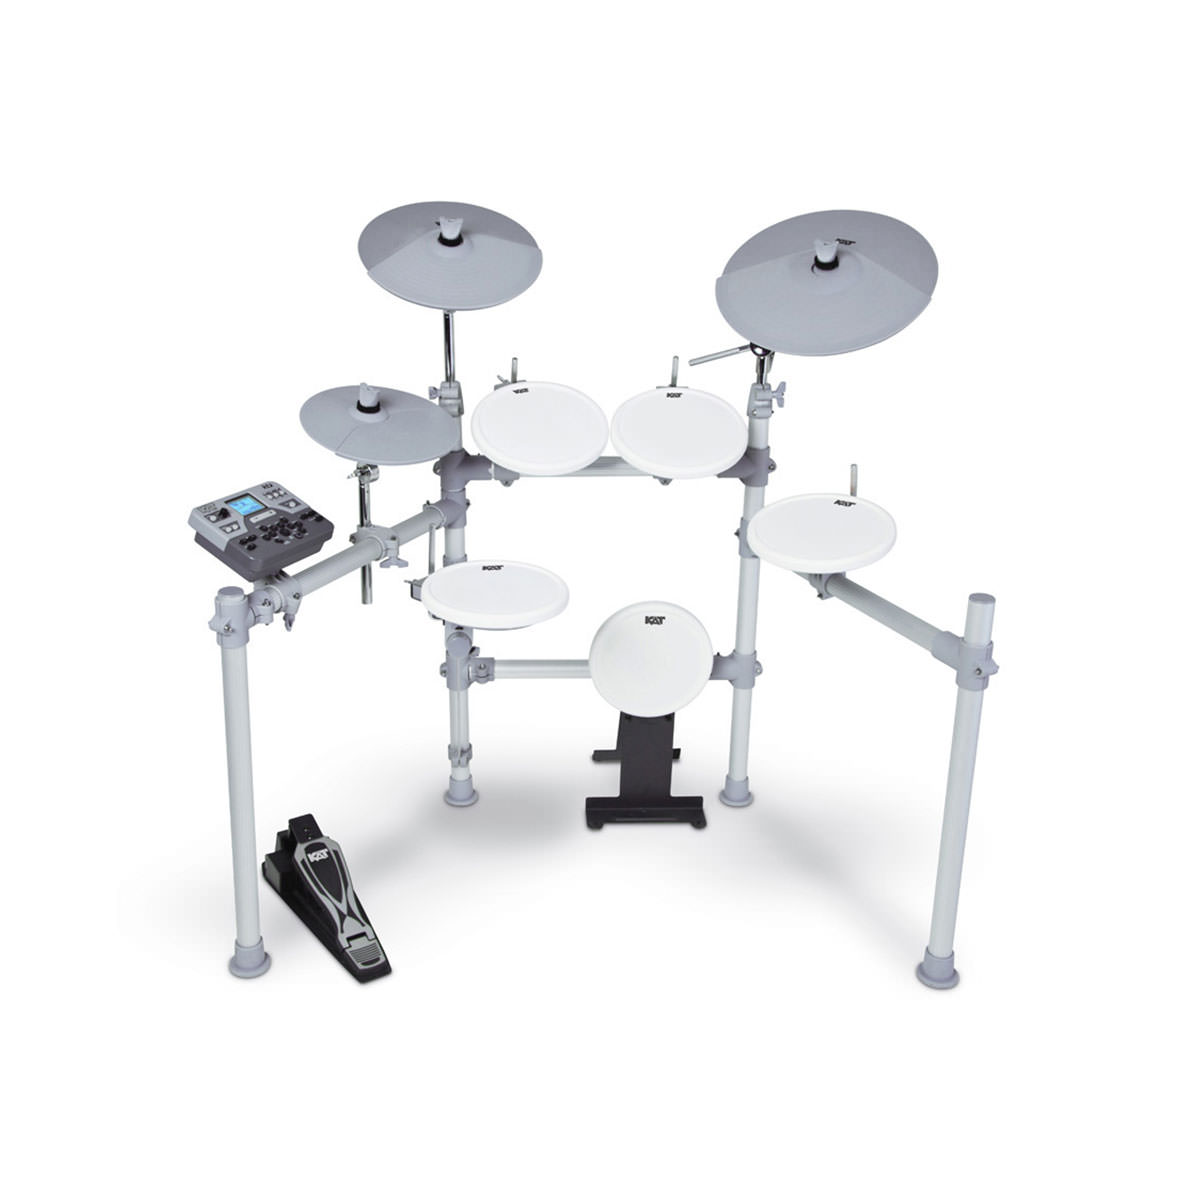 Electronic Drums Archives - Marshall Music